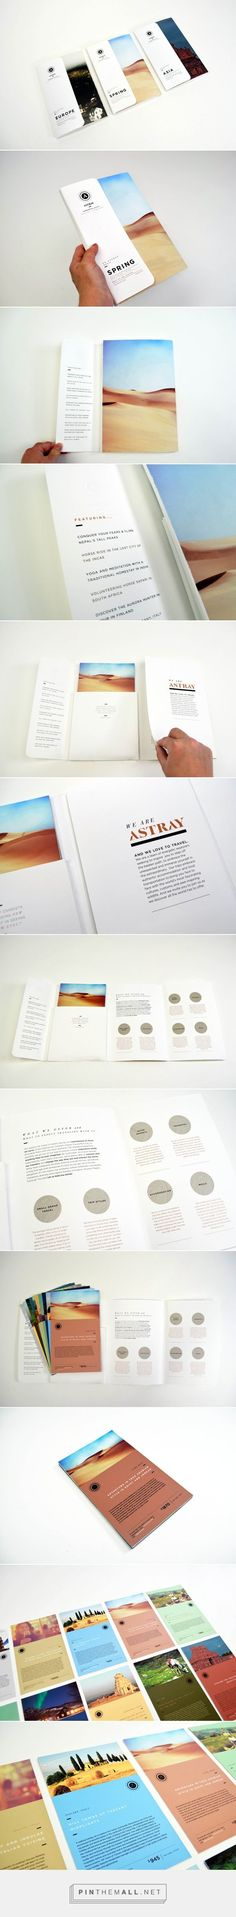 Astray Travel Co : Brochure Design on Behance